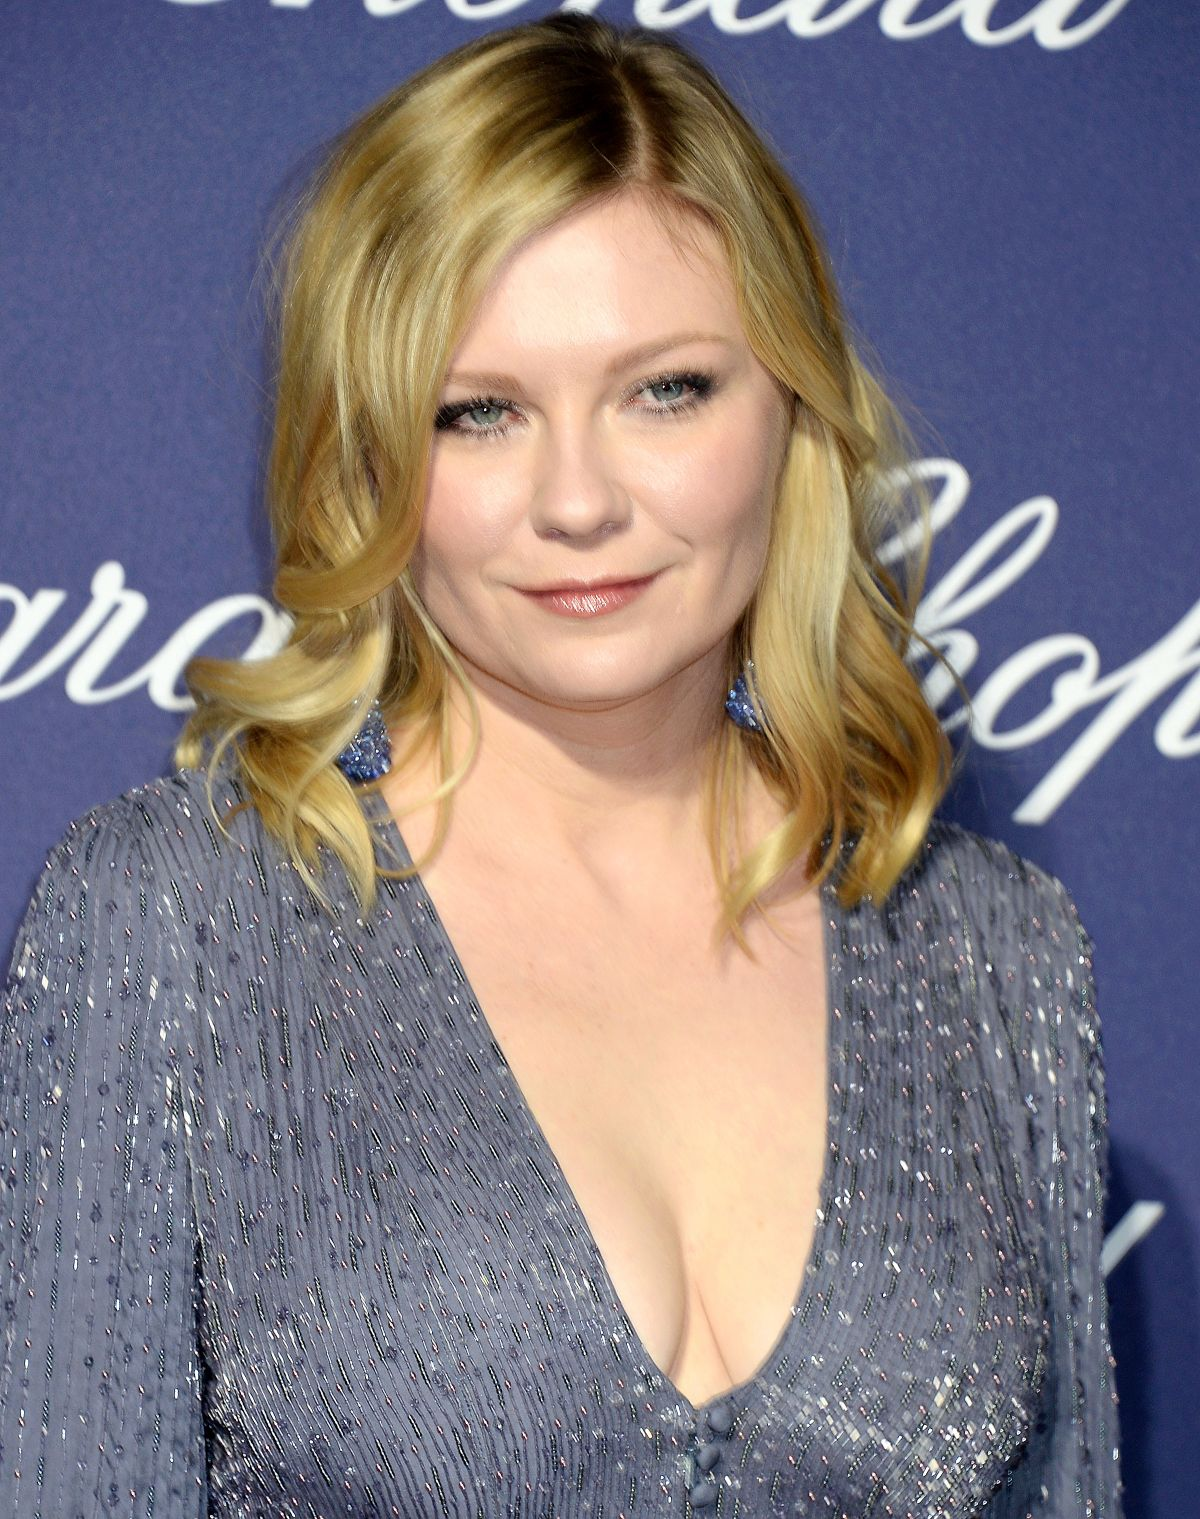 KIRSTEN DUNST at 28th Annual Palm Springs International Film Festival Awards 01/02/2017